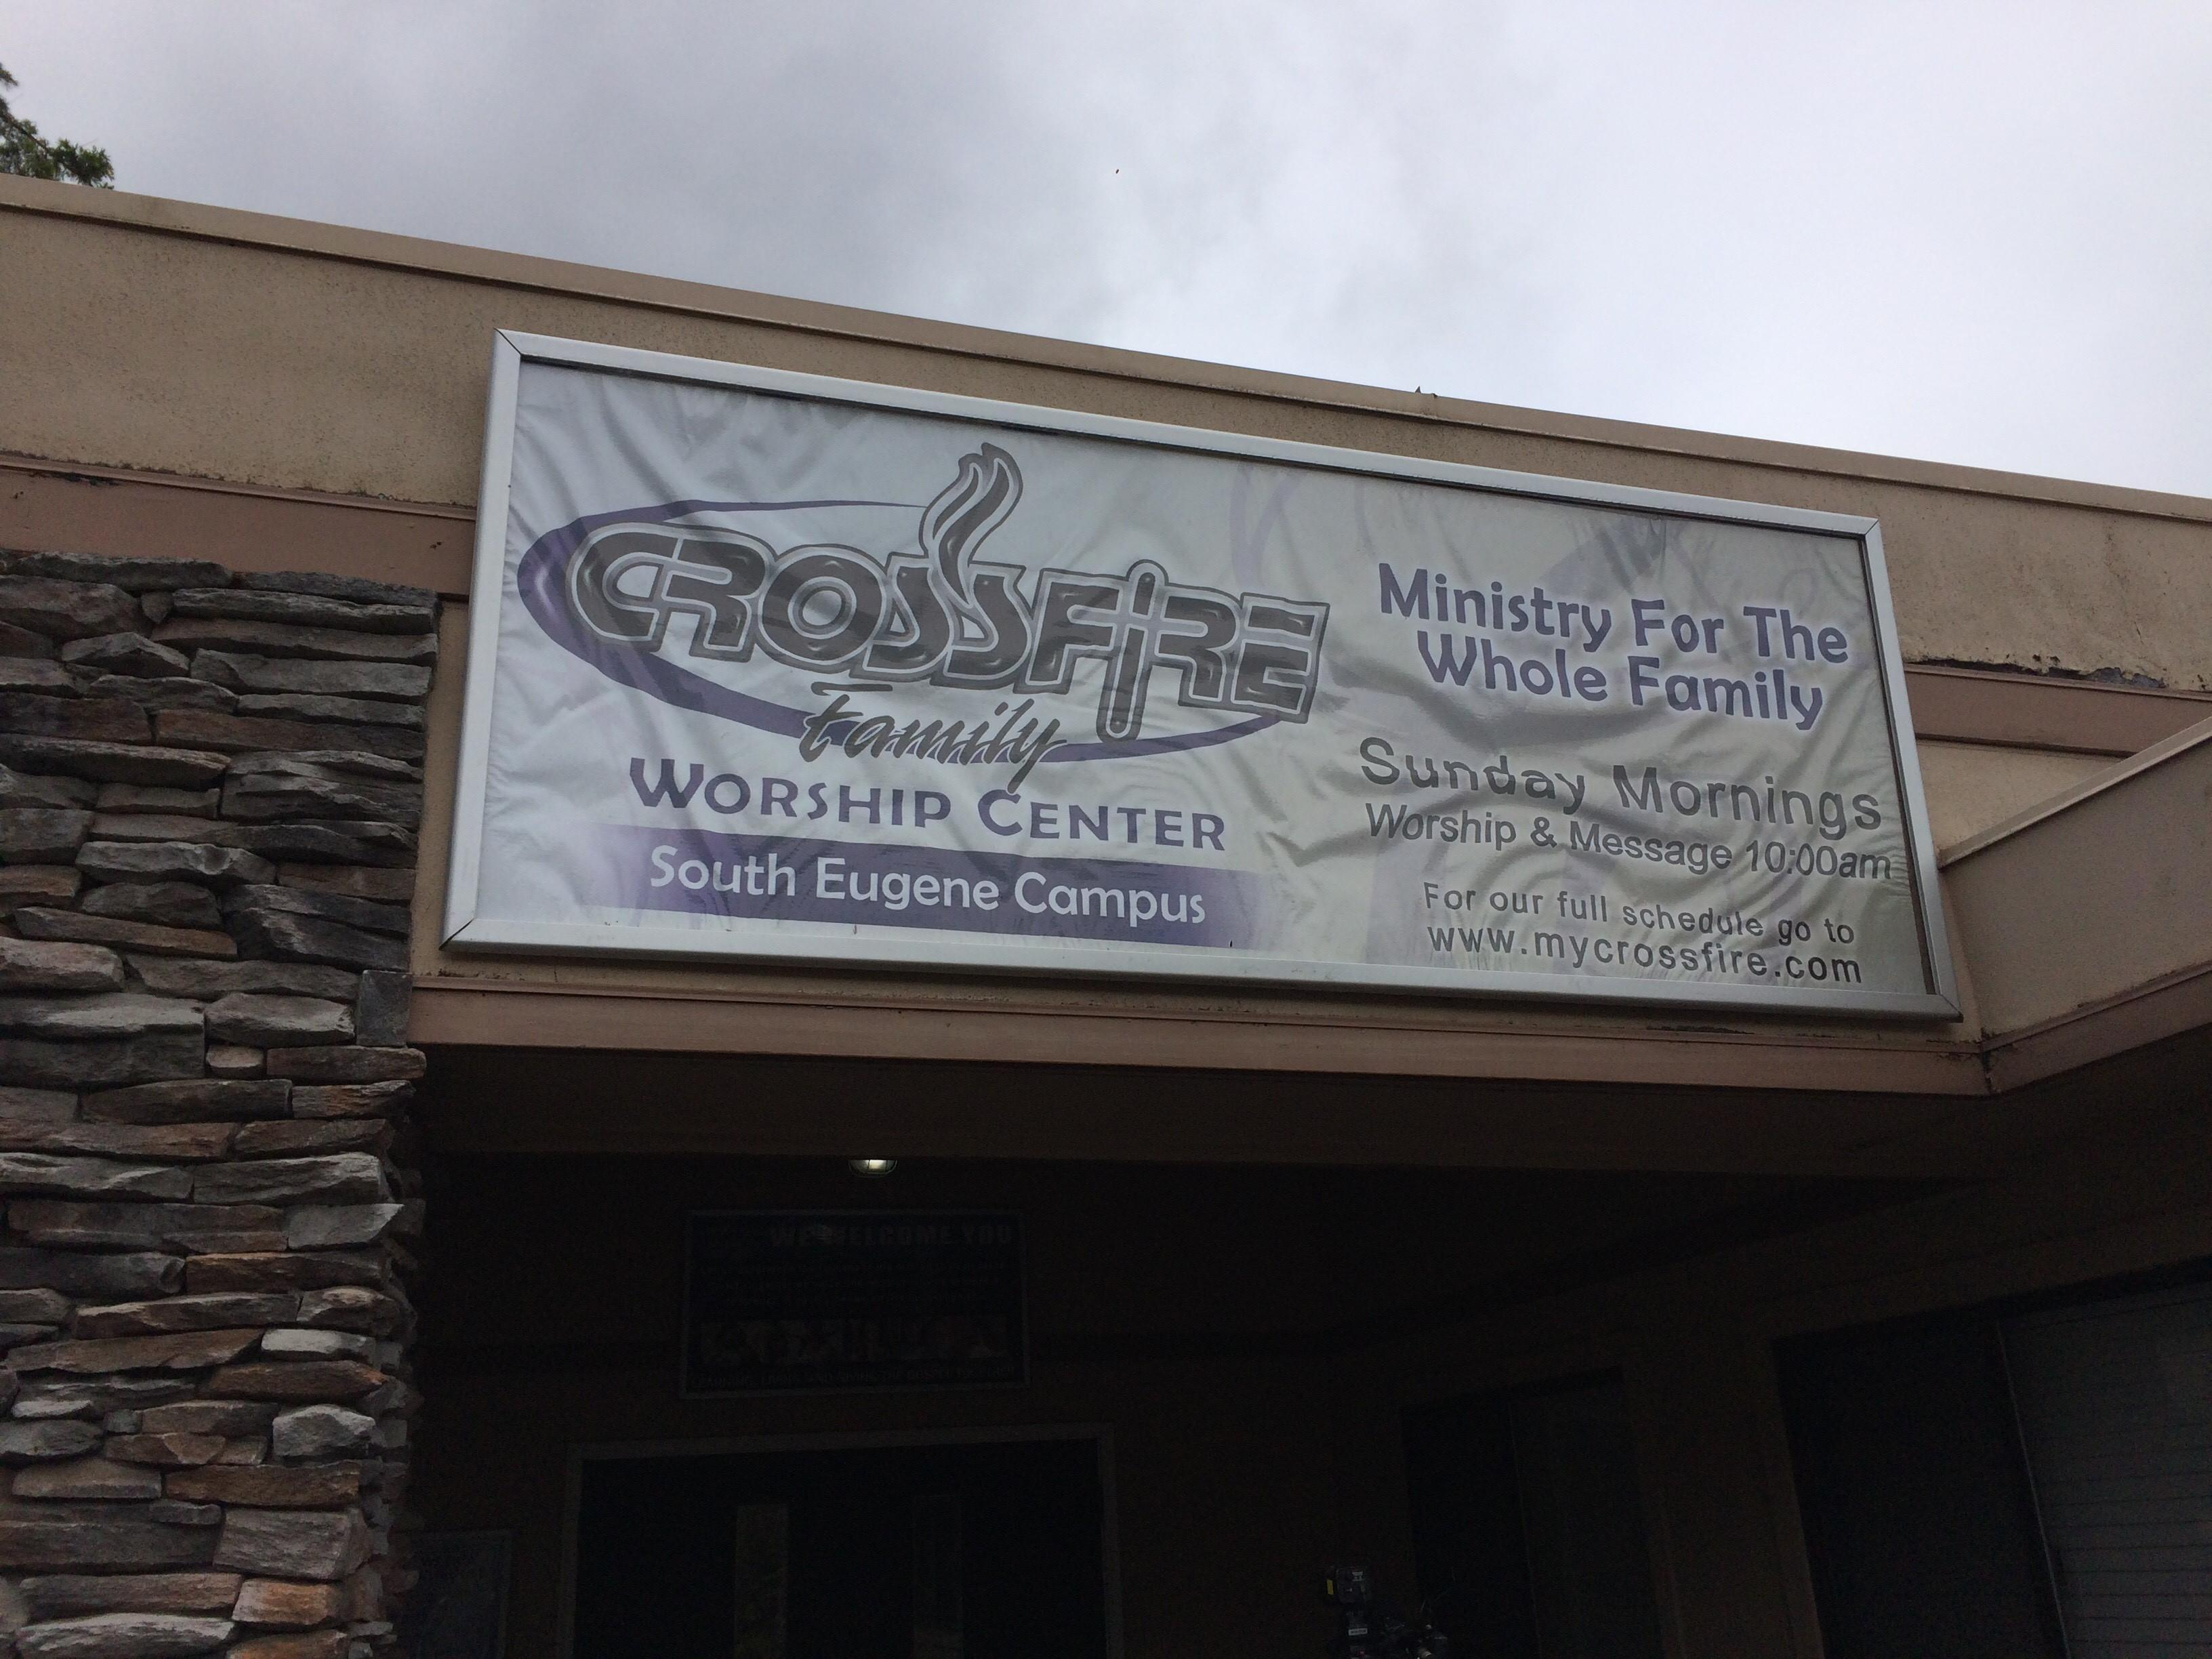 The members of Crossfire Church in Eugene say they're praying for the person who vandalized their windows. (SBG photo)